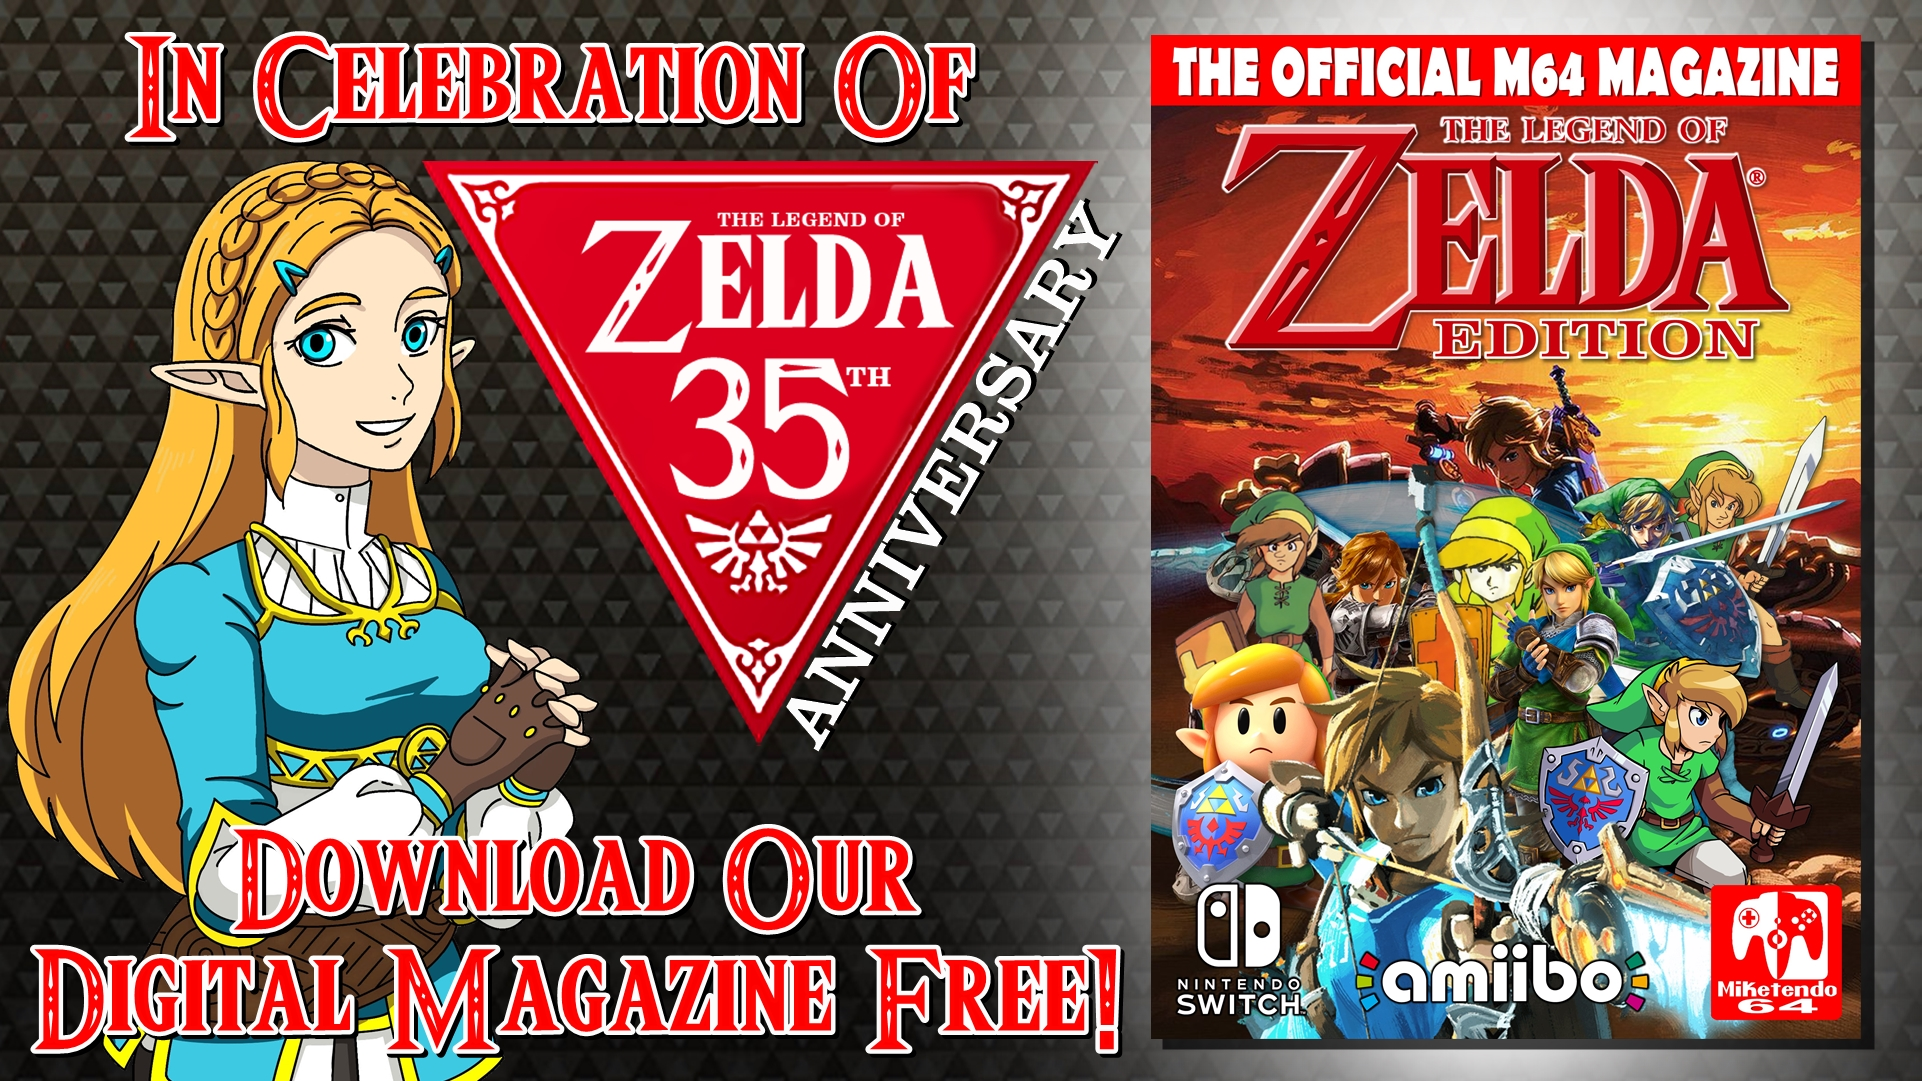 M64 Magazine - The Legend of Zelda Edition